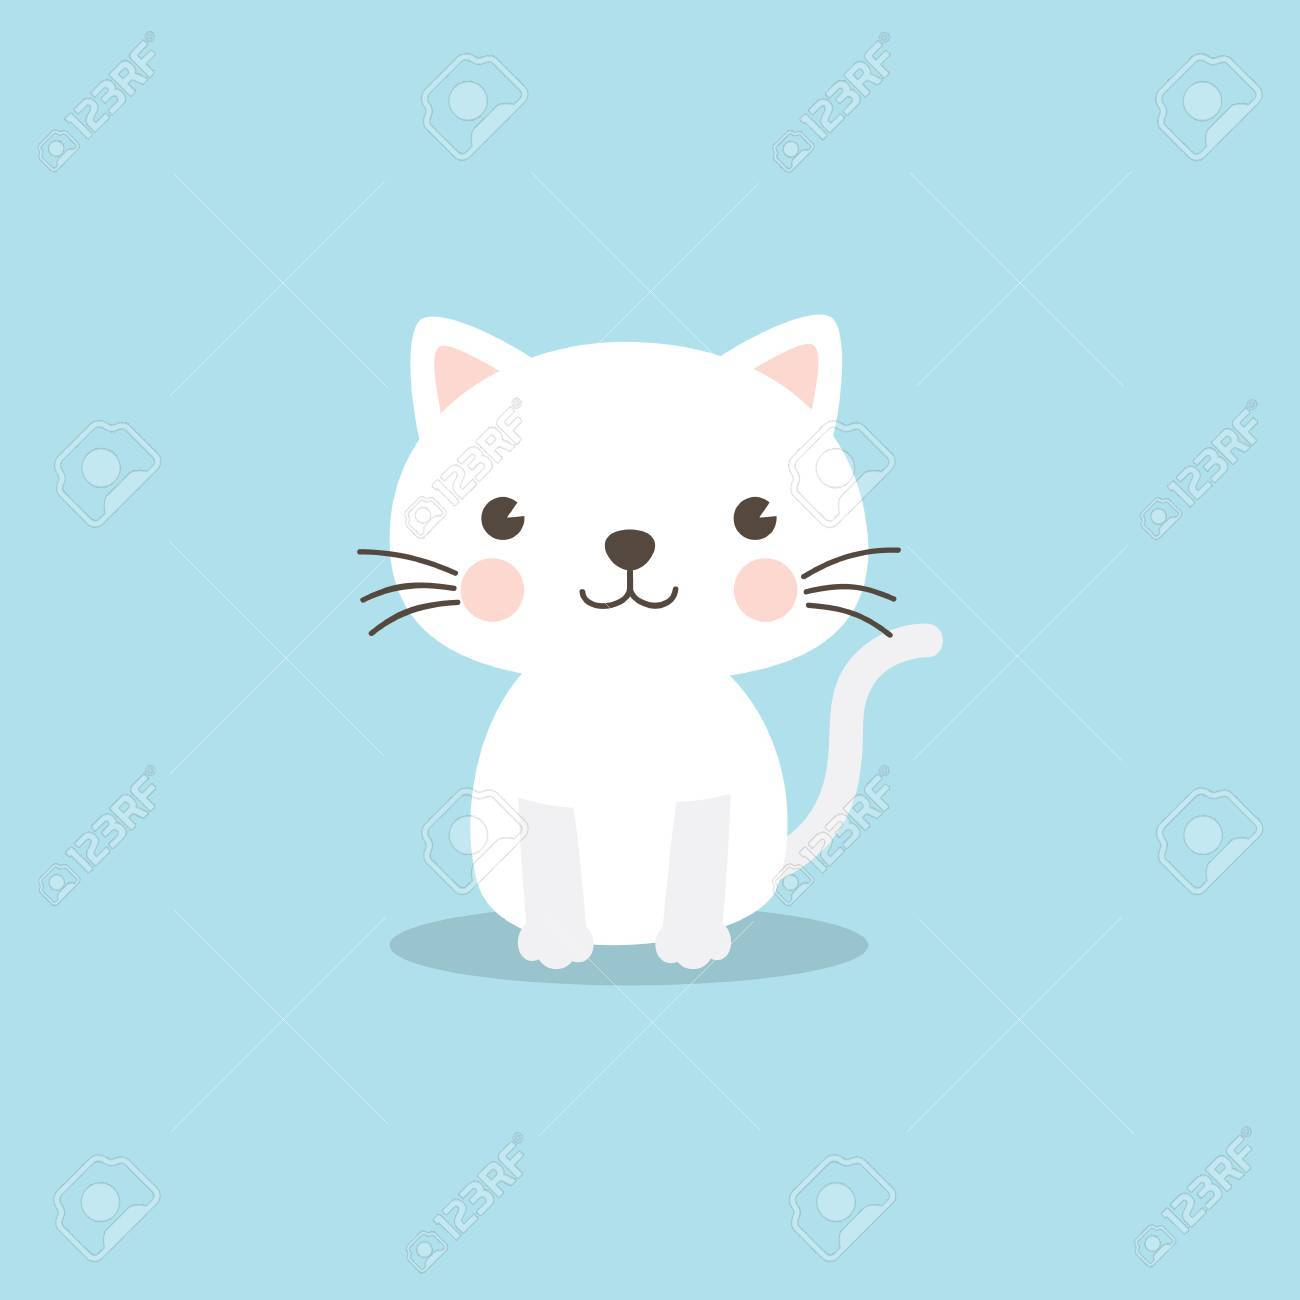 Cat Character A Cute White Kitten On Sky Blue Background Funny Vector Illustration